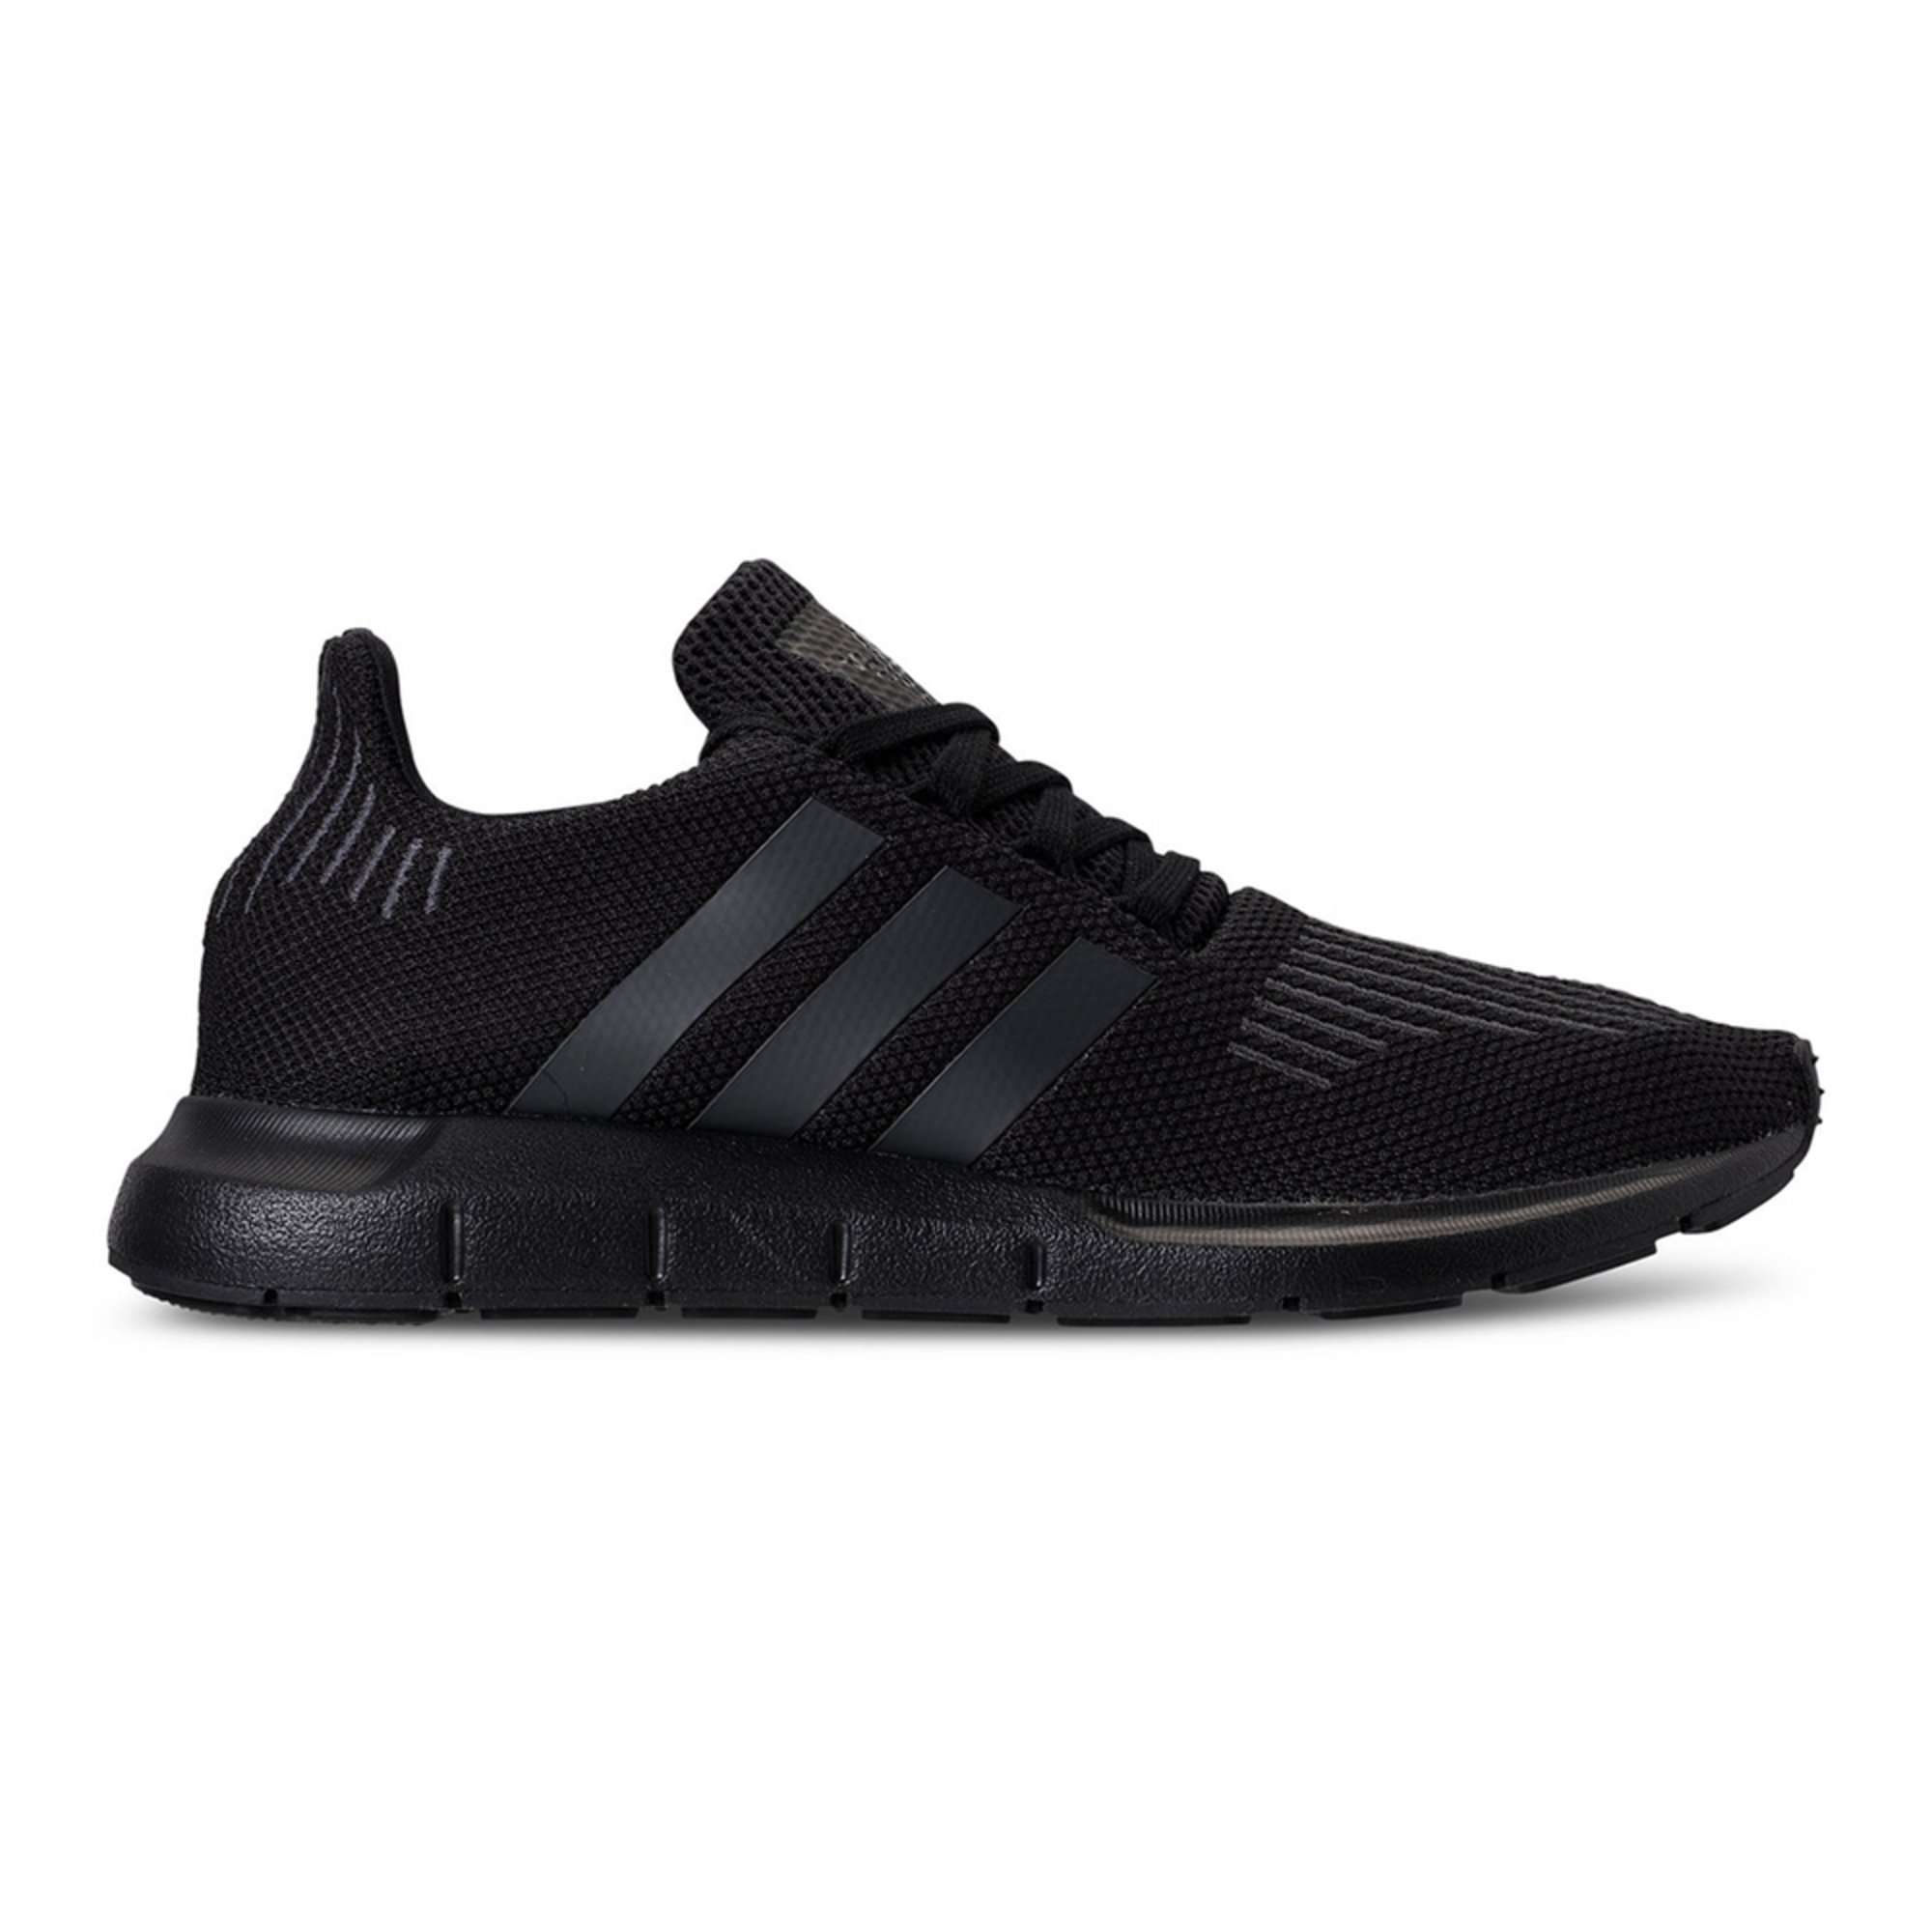 adidas swift run men 39 s running shoe core black utility black shoes shop your navy. Black Bedroom Furniture Sets. Home Design Ideas